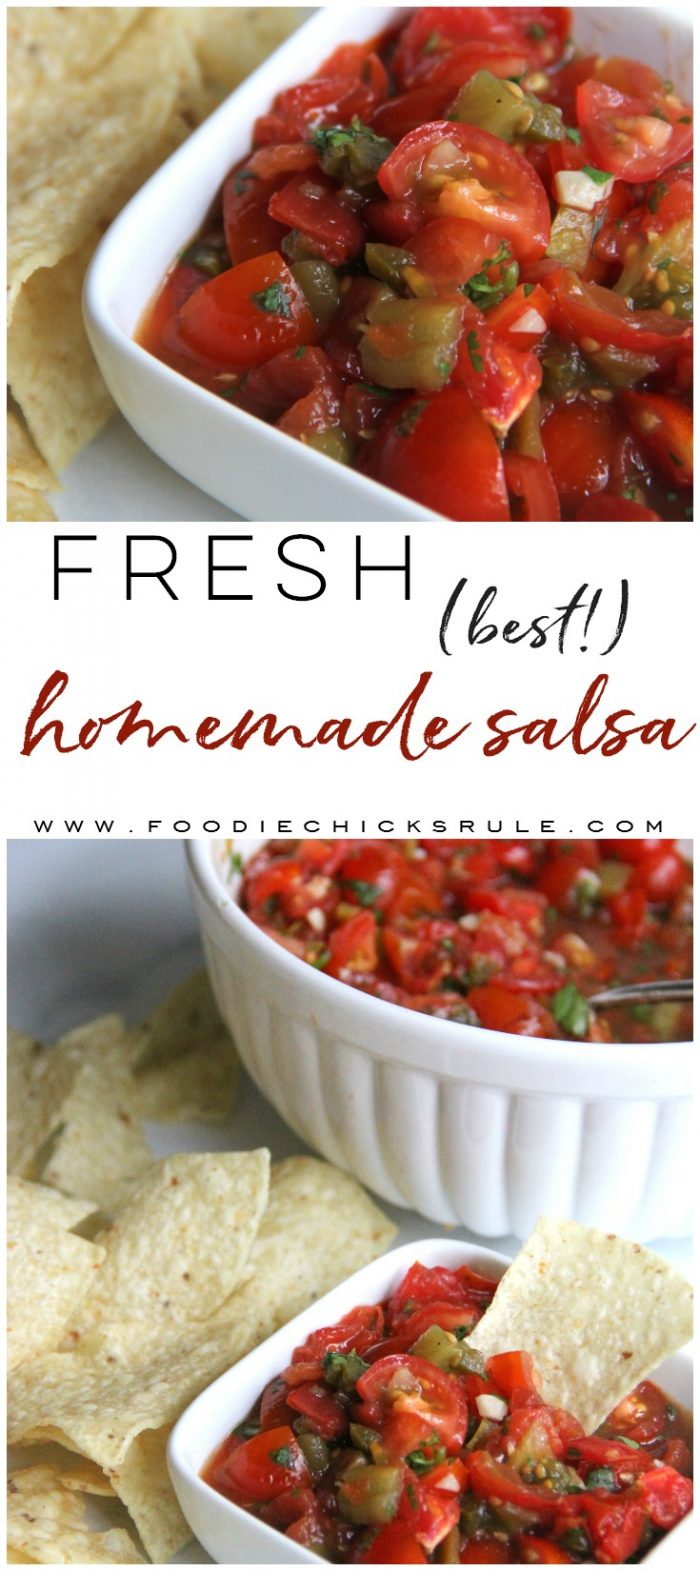 Best Homemade Salsa!! So fresh and SO easy to make! foodiechicksrule.com #mexicanfood #homemadesalsa #bestsalsarecipe #mexicanrecipes